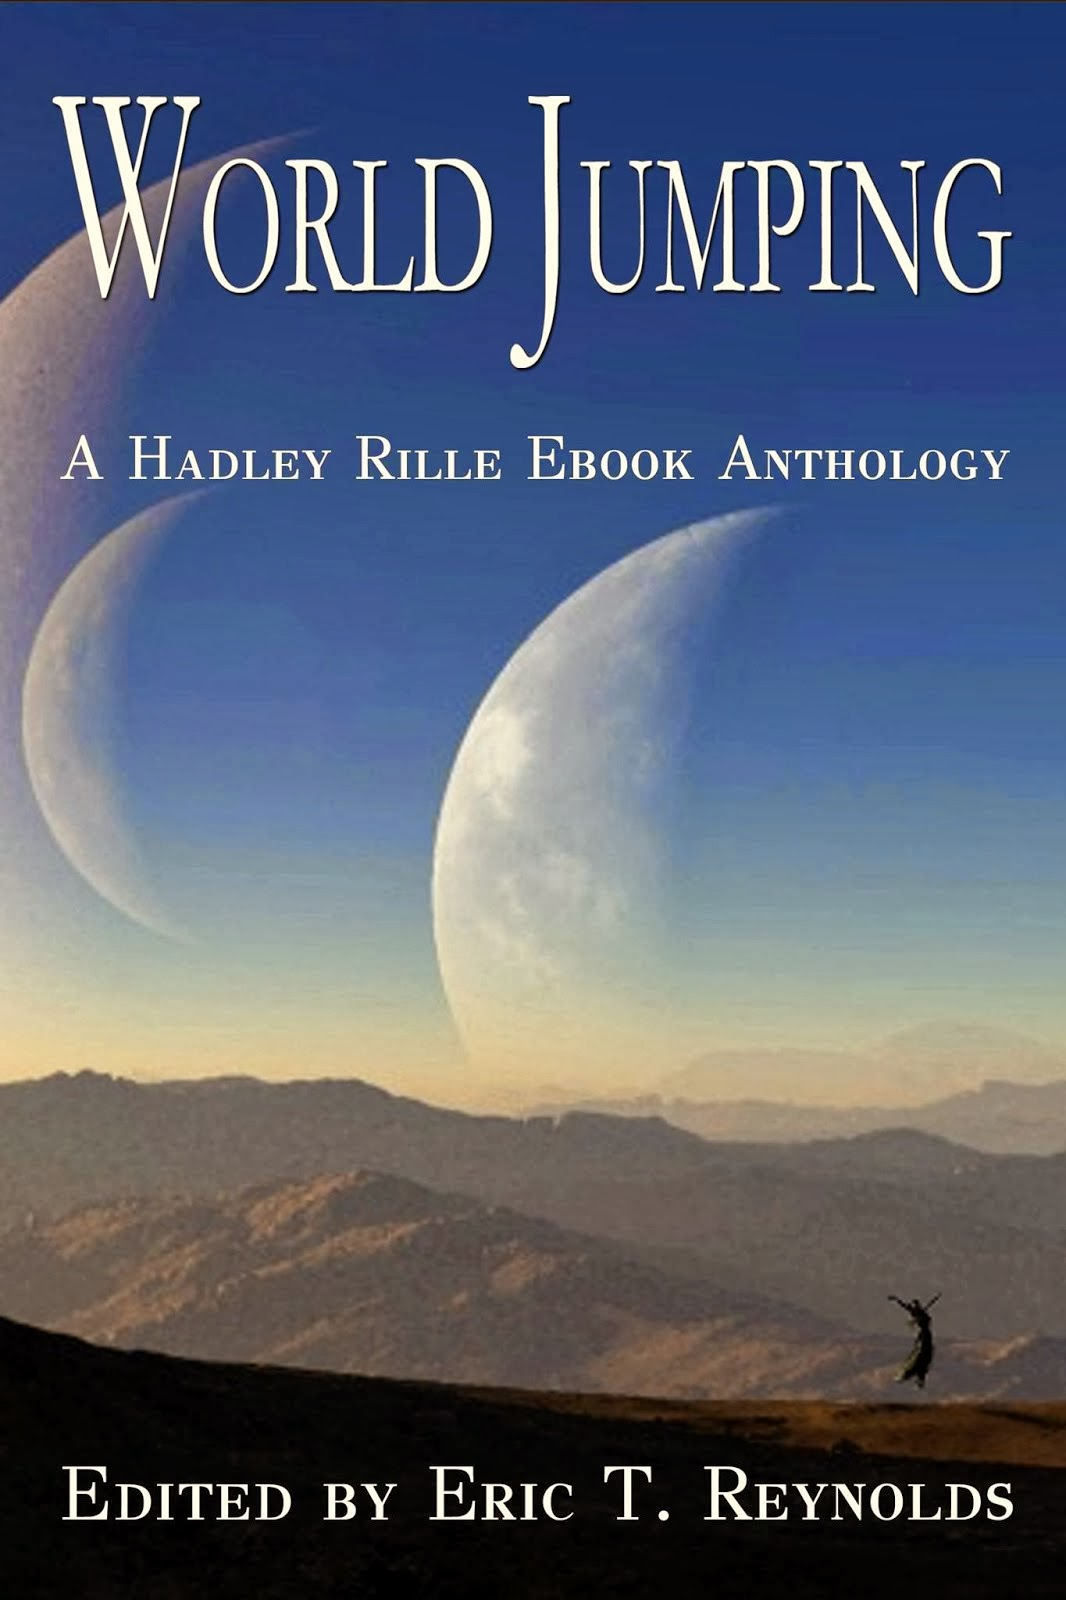 NEW! Anthology of Science Fiction and Fantasy featuring some of Hadley Rille Books favorite authors